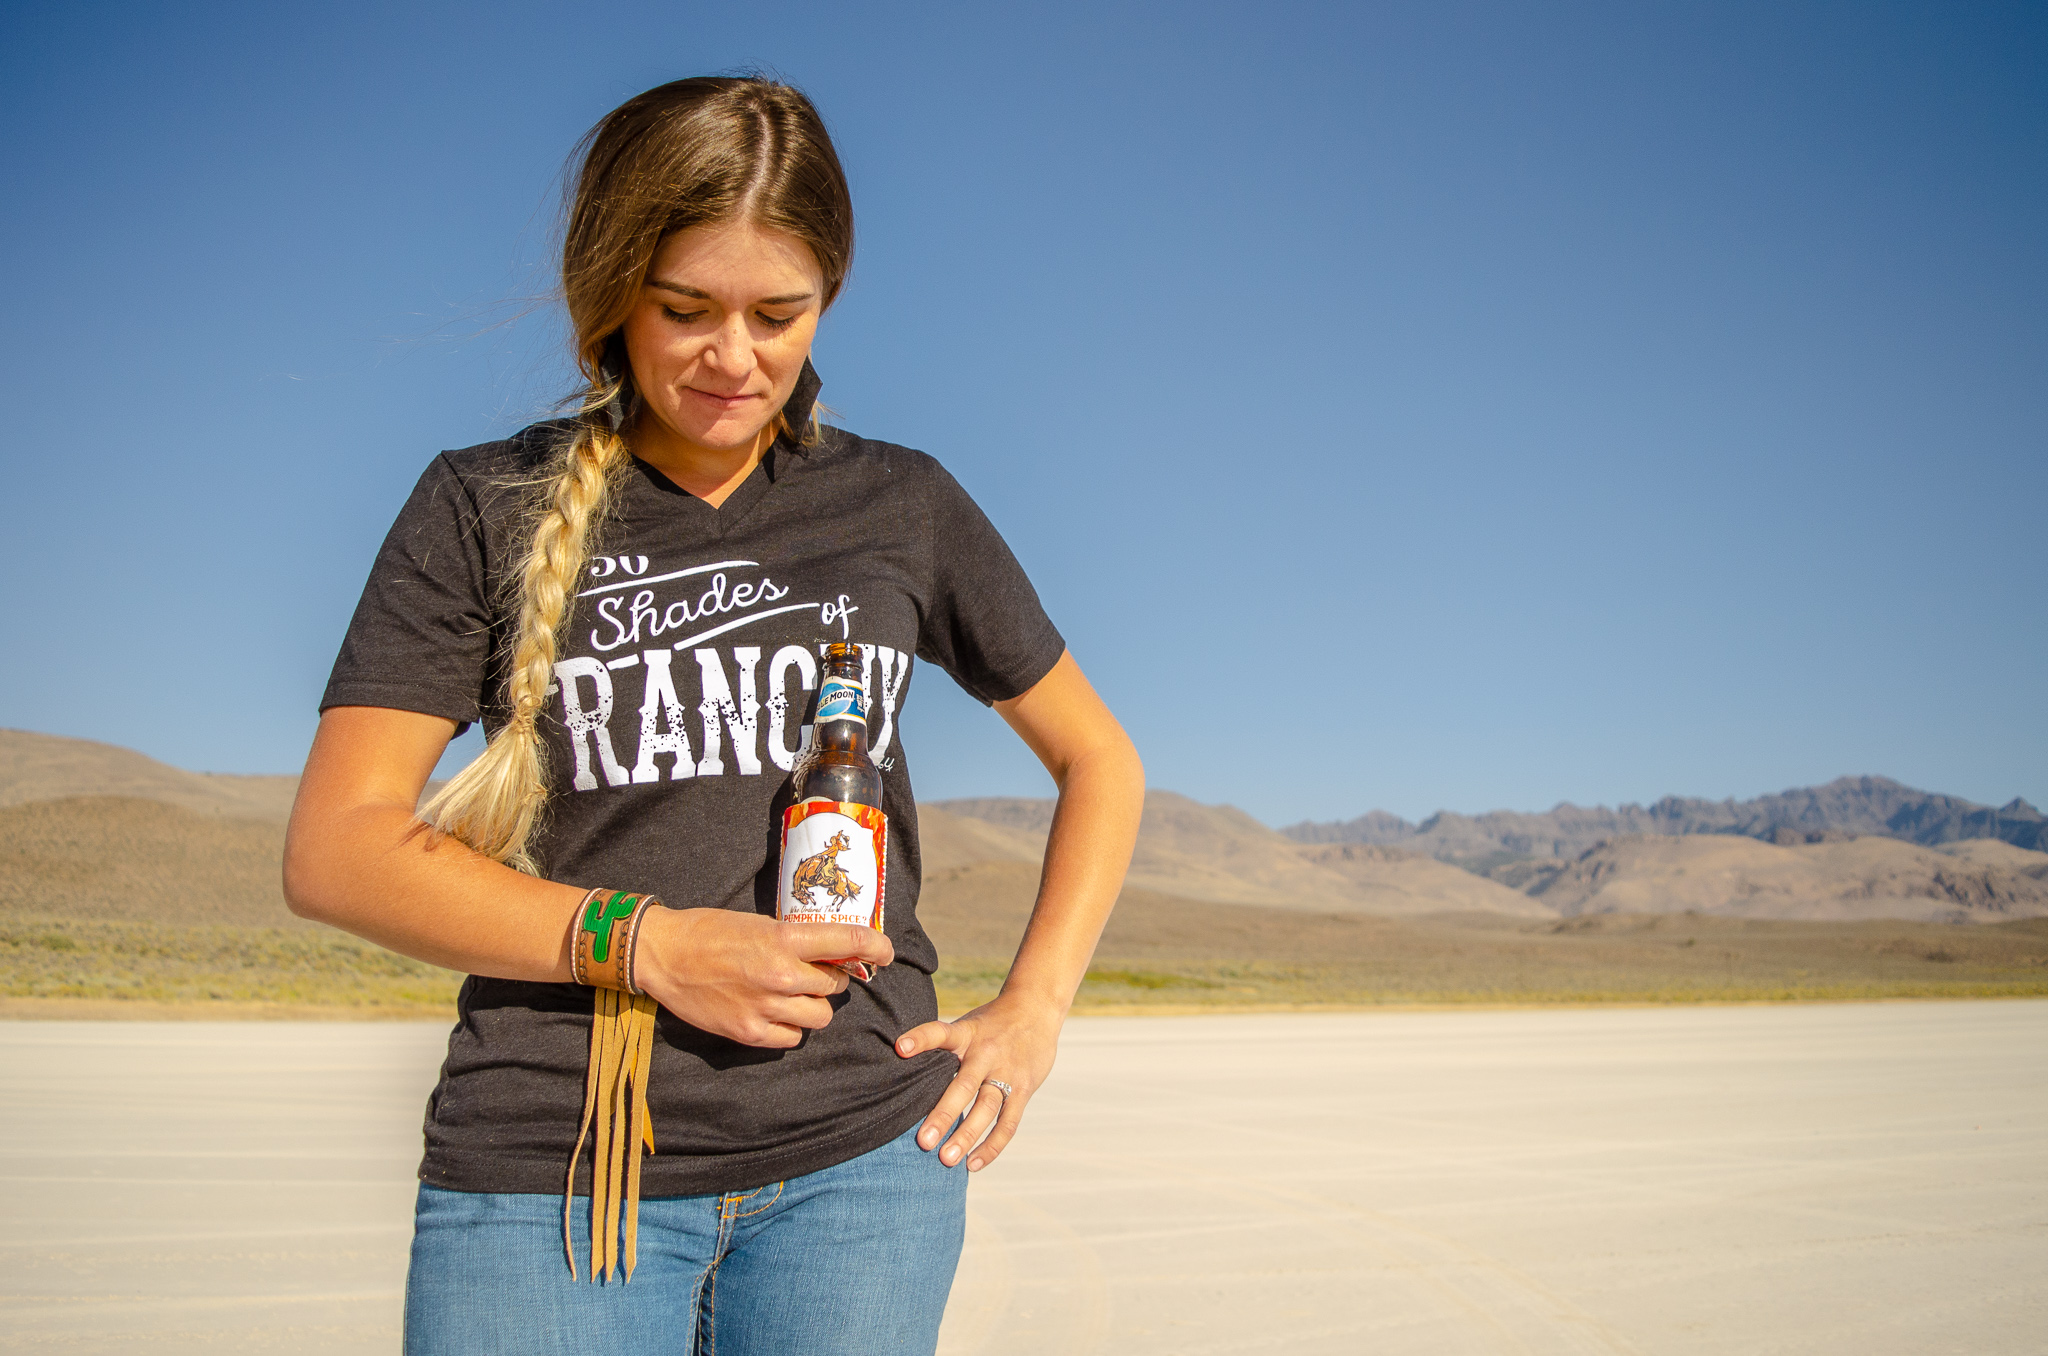 50 Shades of Ranchy  tee and koozie by U Spur. Cactus Fringe Cuff by JL Custom Leather and Beadwork.